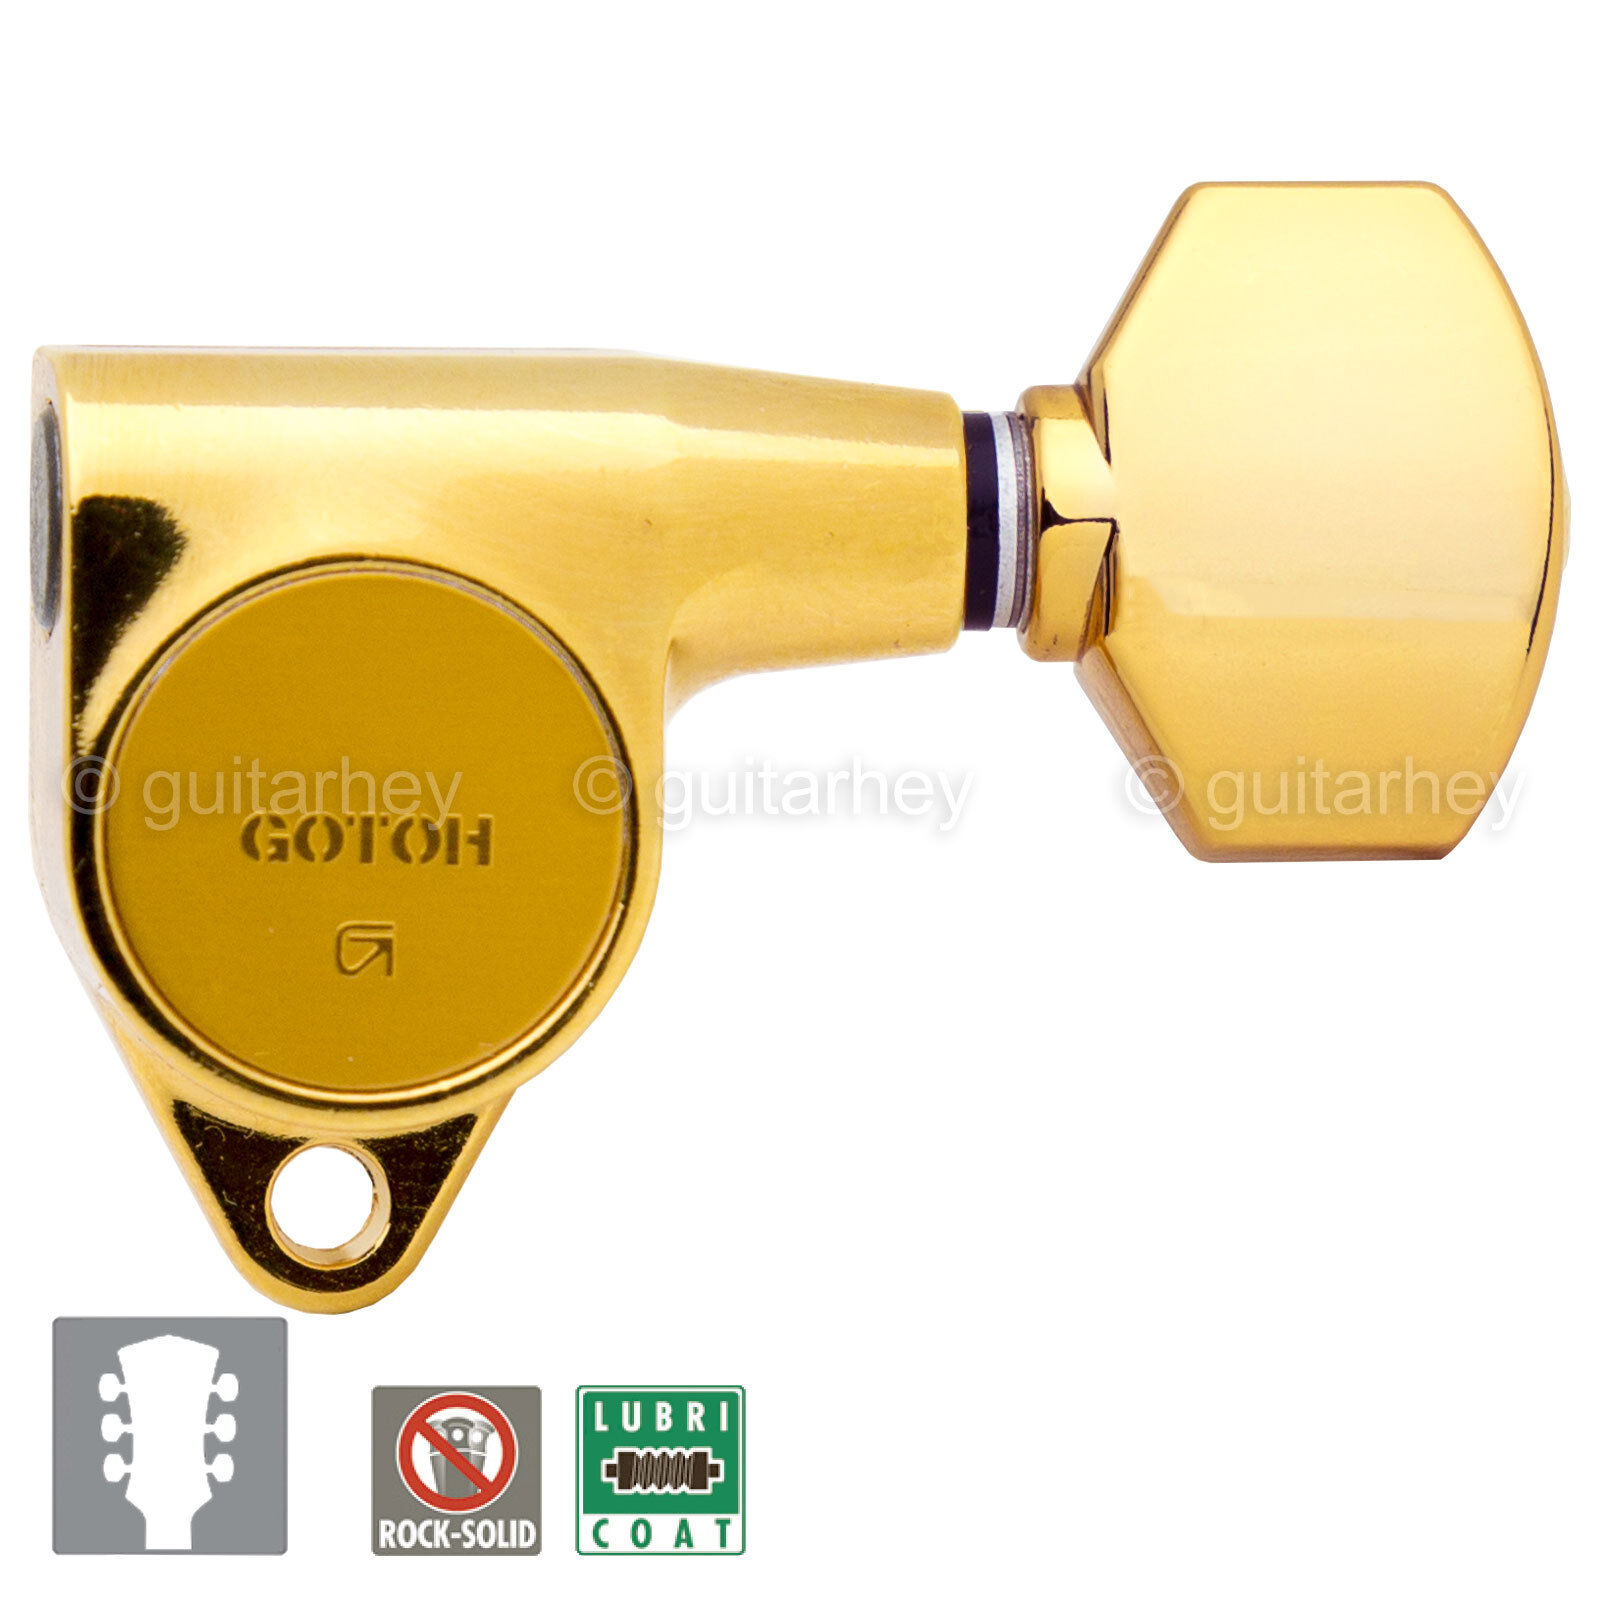 NEW Gotoh SG301-07 Tuning Keys L3+R3 Tuners Small Buttons 3x3 - GOLD